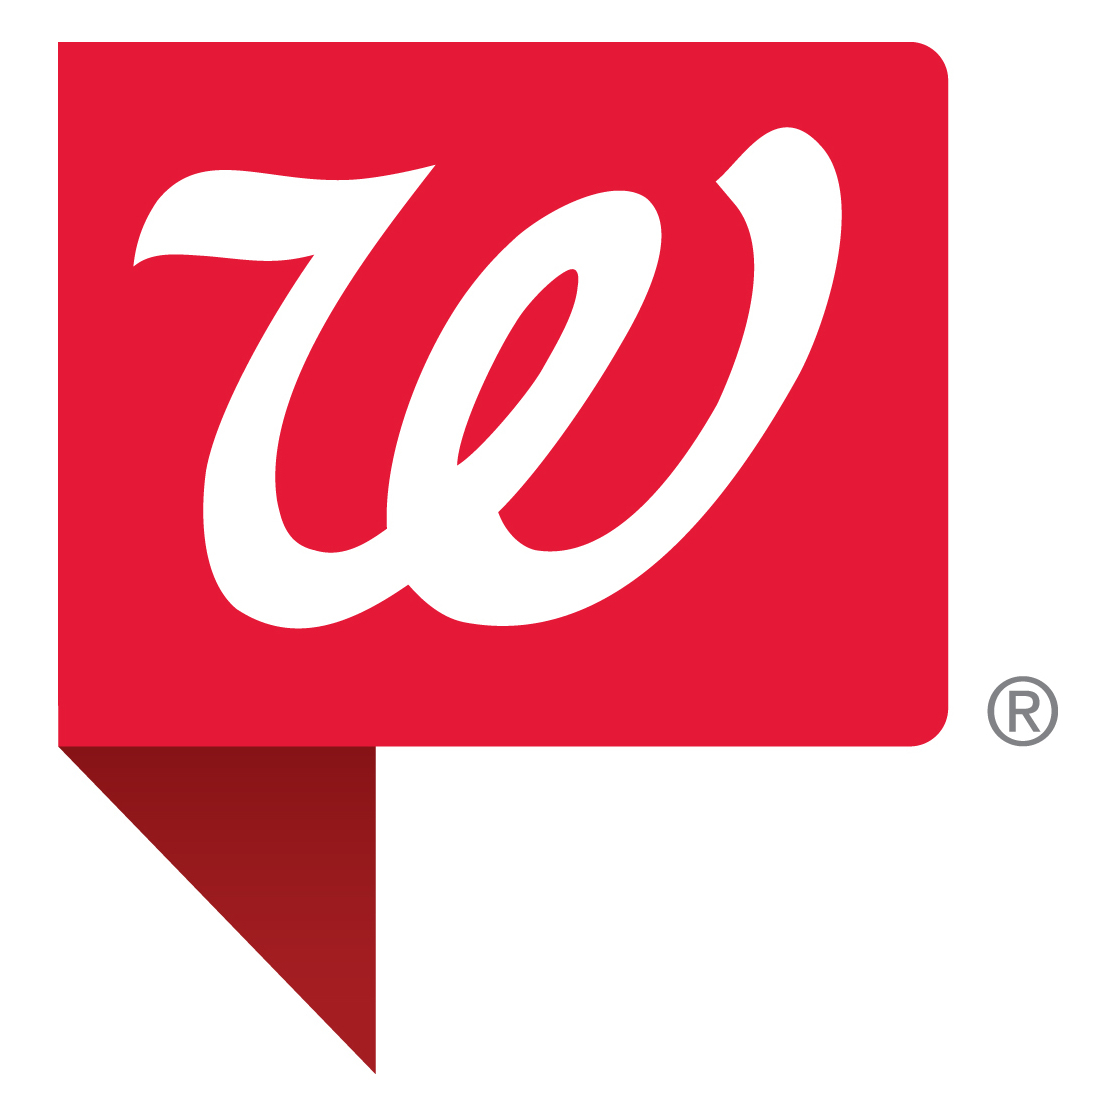 Walgreens - Hanford, CA - Pharmacist